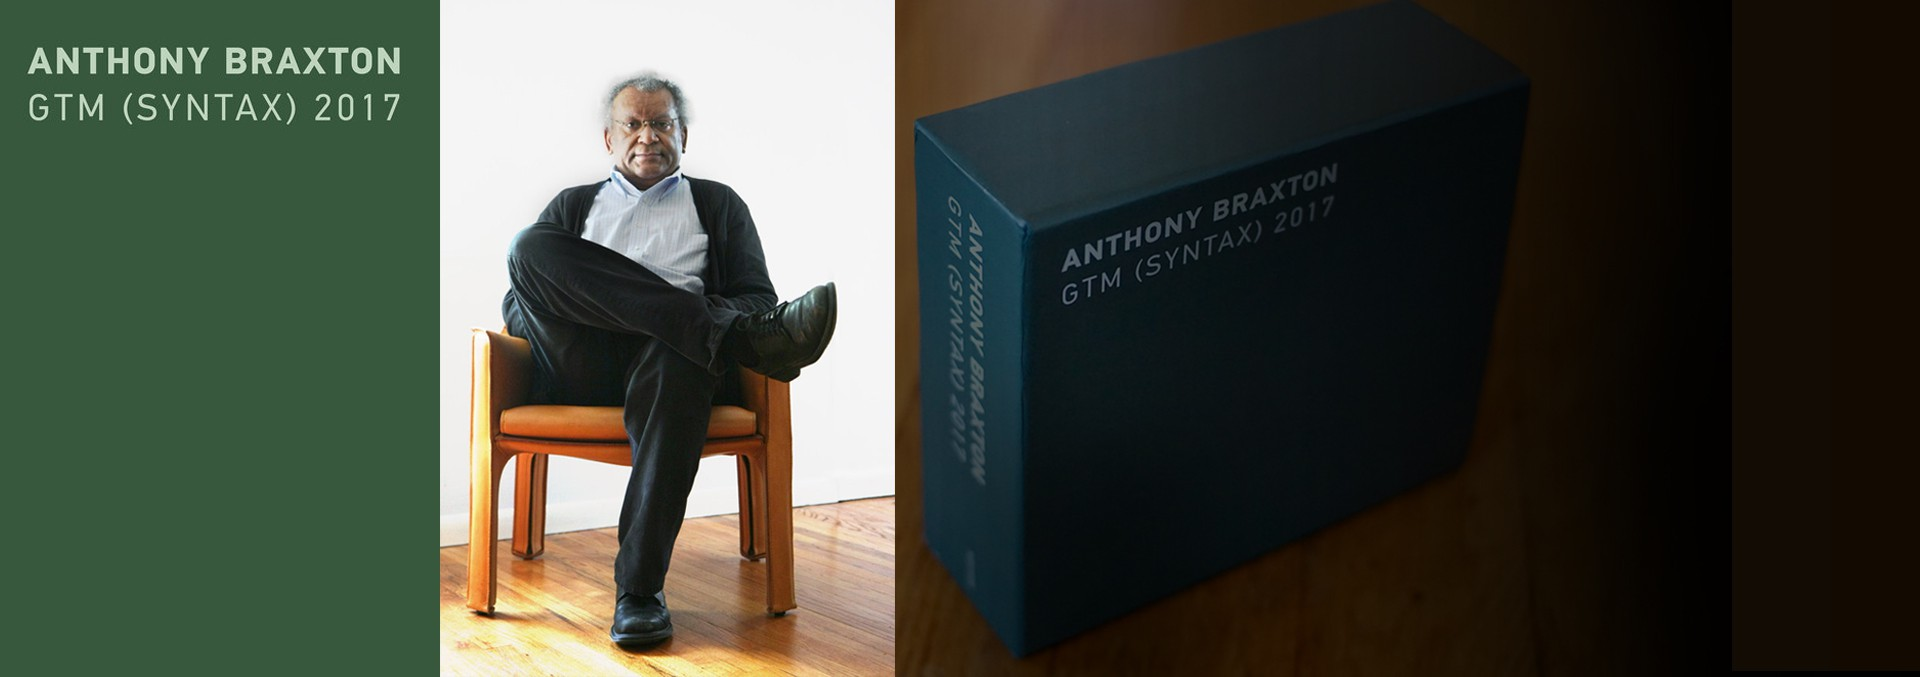 Anthony braxton GTM Syntax